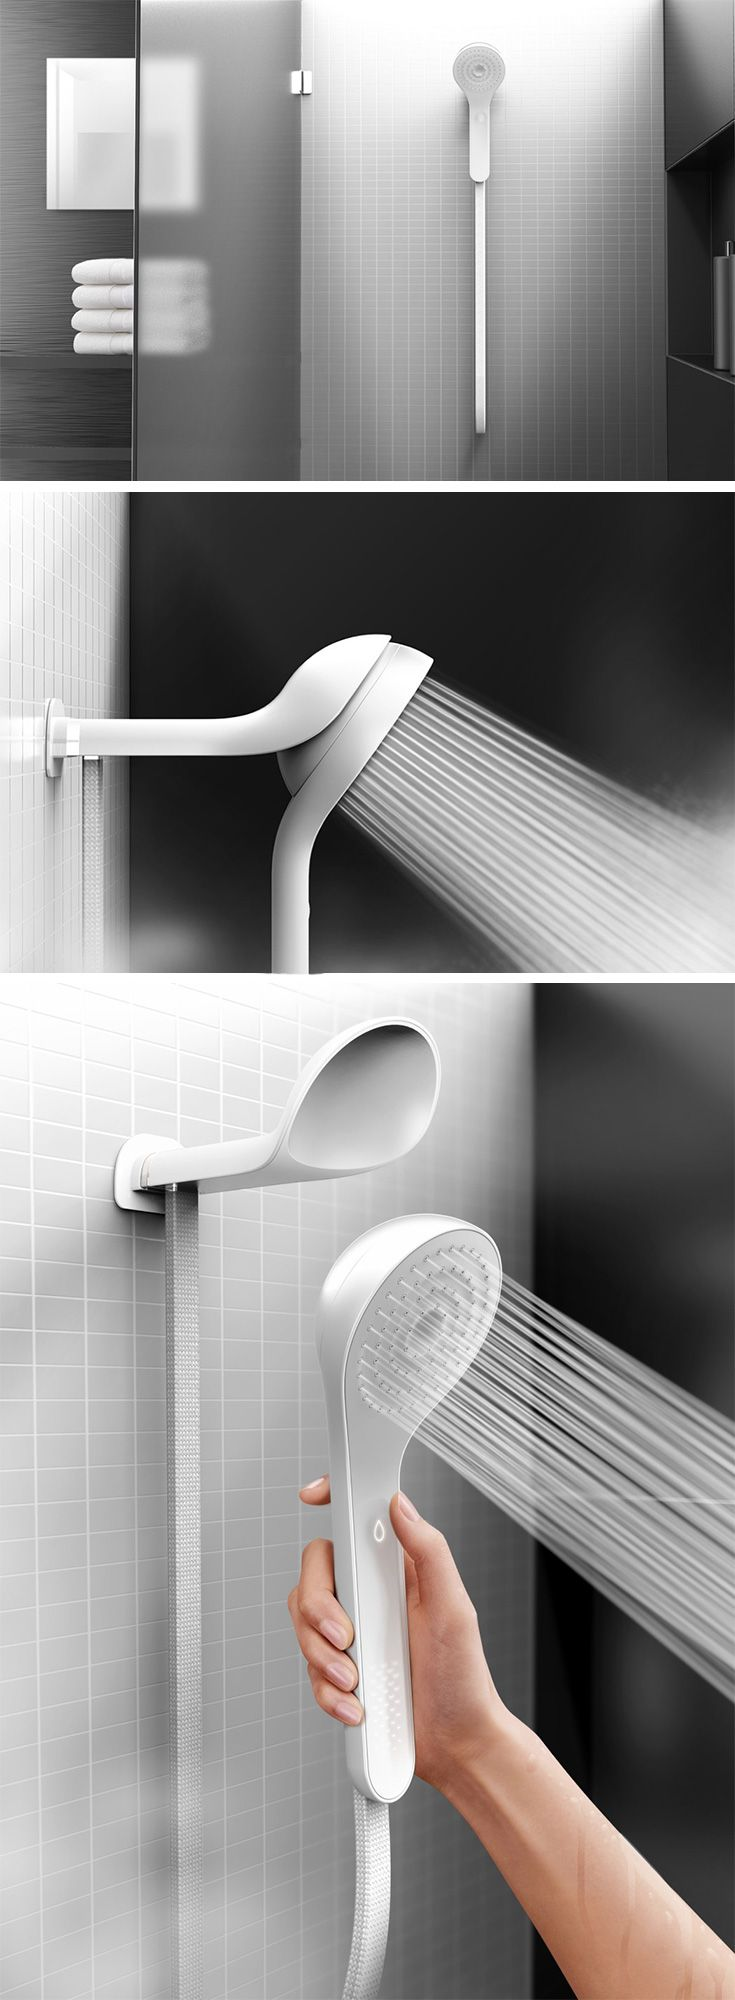 The 'Well' by Matter and Mindtribe aimed to set up a system monitoring water-usage in one's home and have stats sent to the homeowner's phone. However, what we are captivated by is the resultant shower-head design that contained a smart-fixture, helping curb water usage through clever use of color-changing LEDs on its handle. The showerhead actually combines itself with the hand-shower, becoming a hybrid in itself.